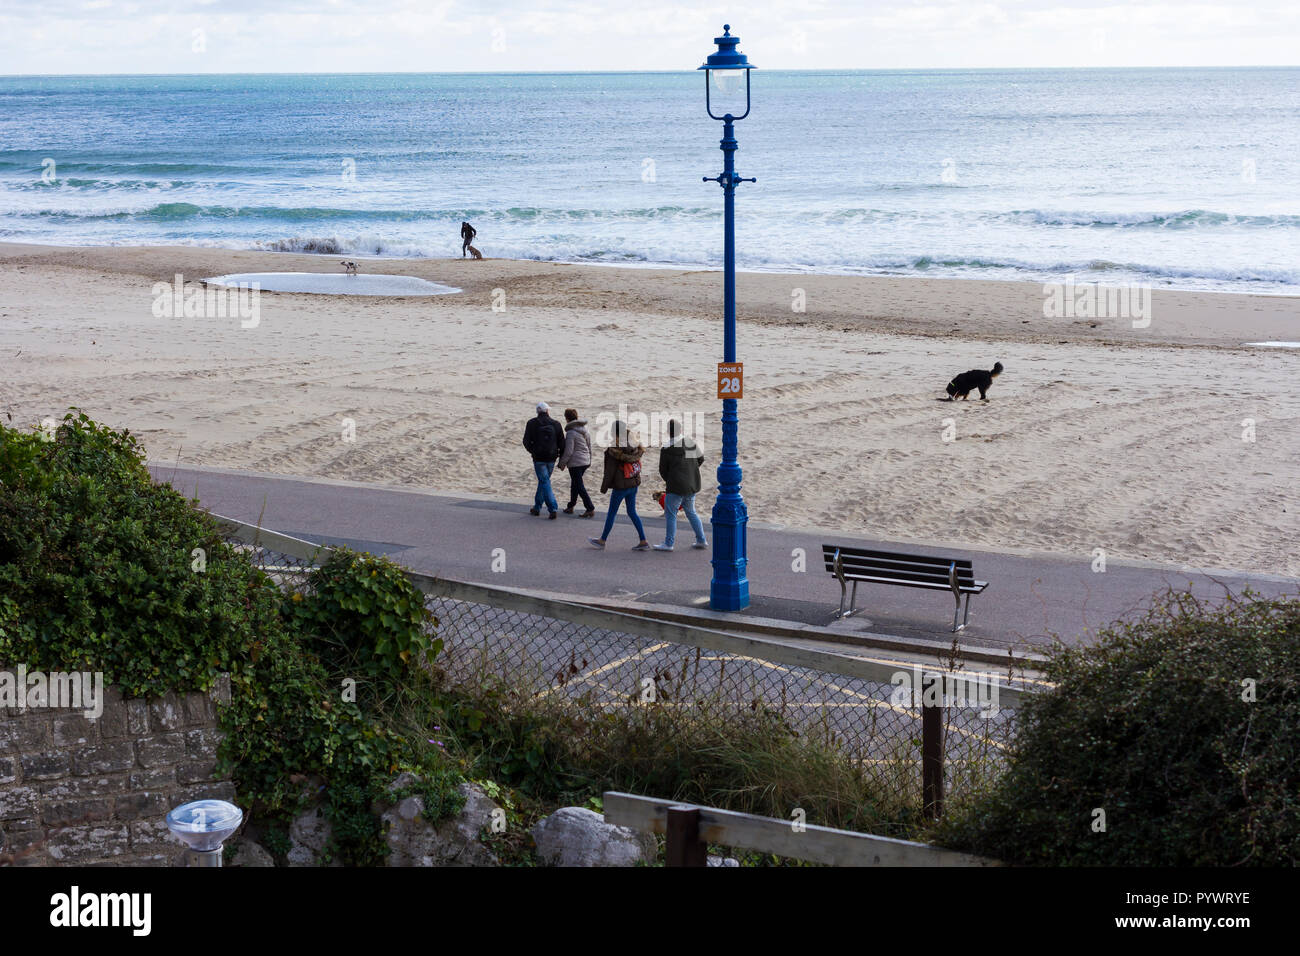 People & dogs out for a sunday afternoon walk along Bournemouth promenade & beach on a chilly day in October 2018, Dorset, UK - Stock Image